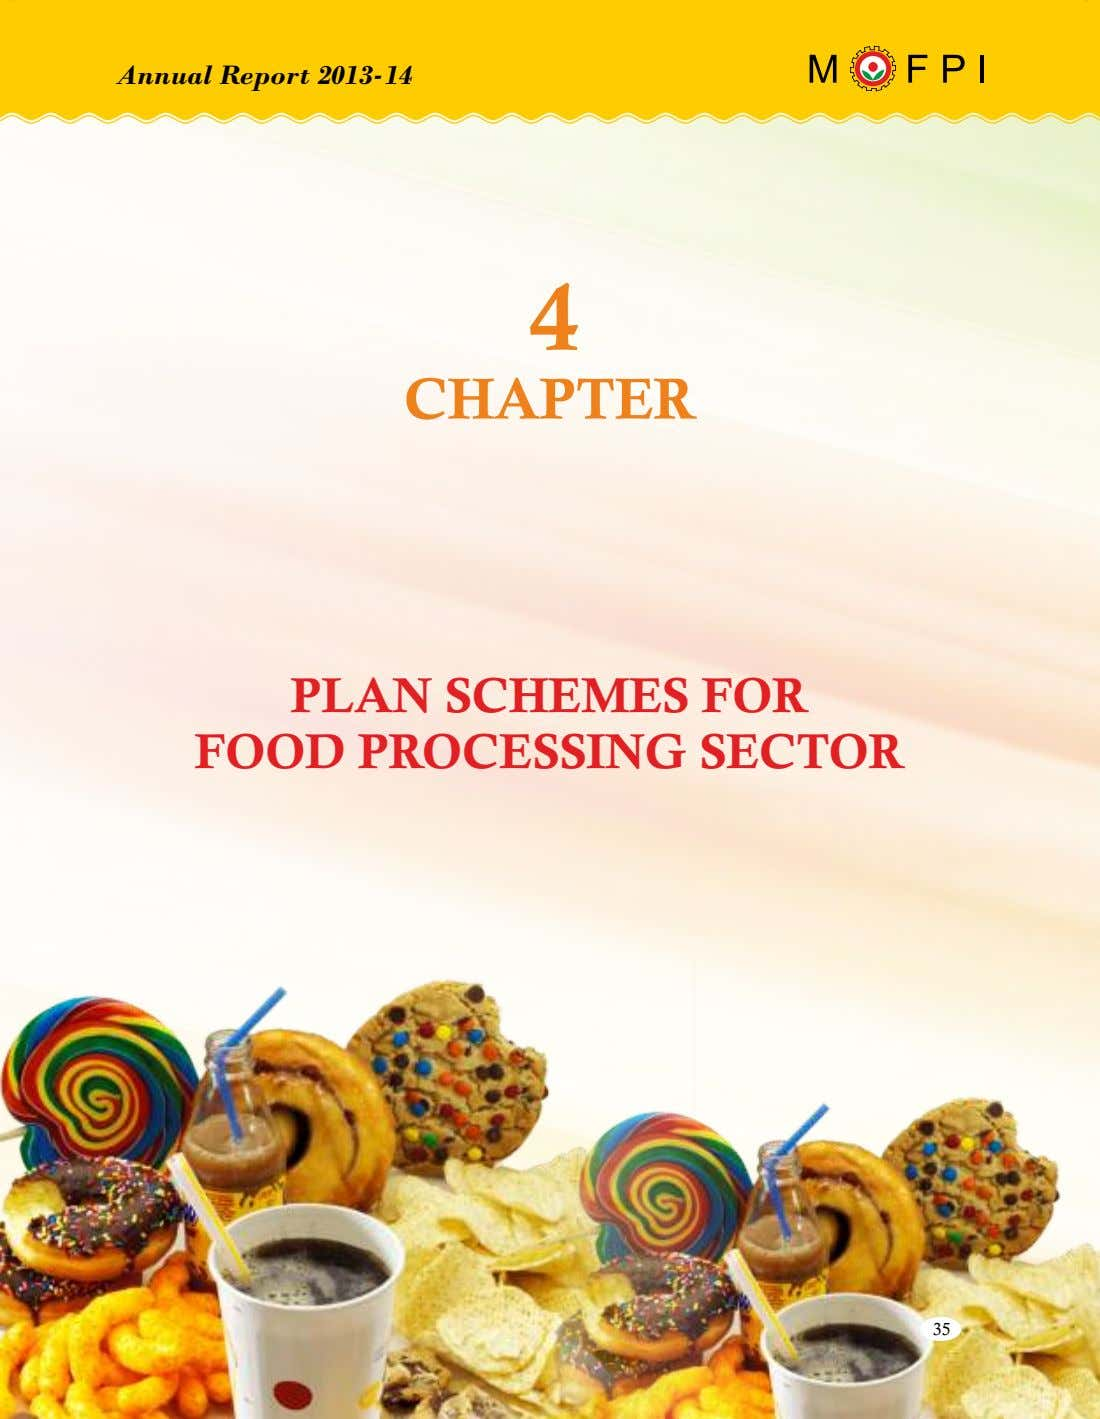 Annual Report 2013-14 4 CHAPTER PLAN SCHEMES FOR FOOD PROCESSING SECTOR 35